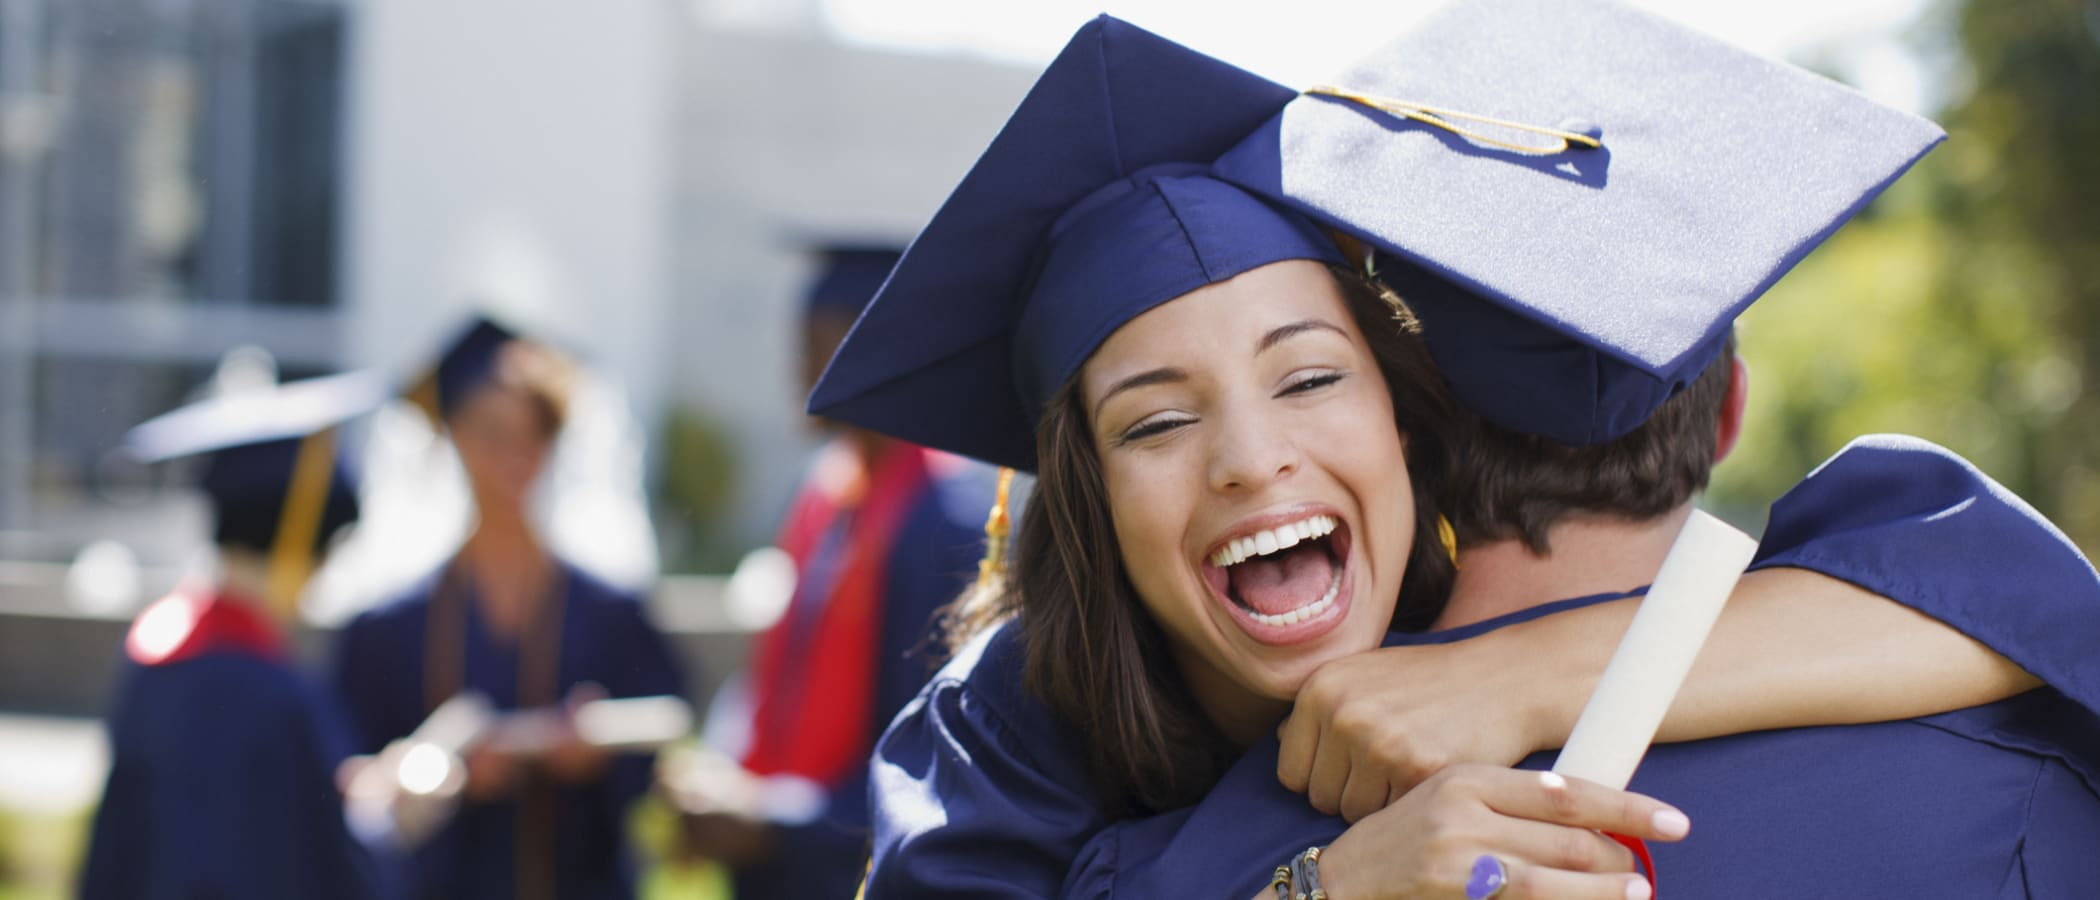 Why Hiring Managers' Expectations for New College Graduates May Be Unrealistic